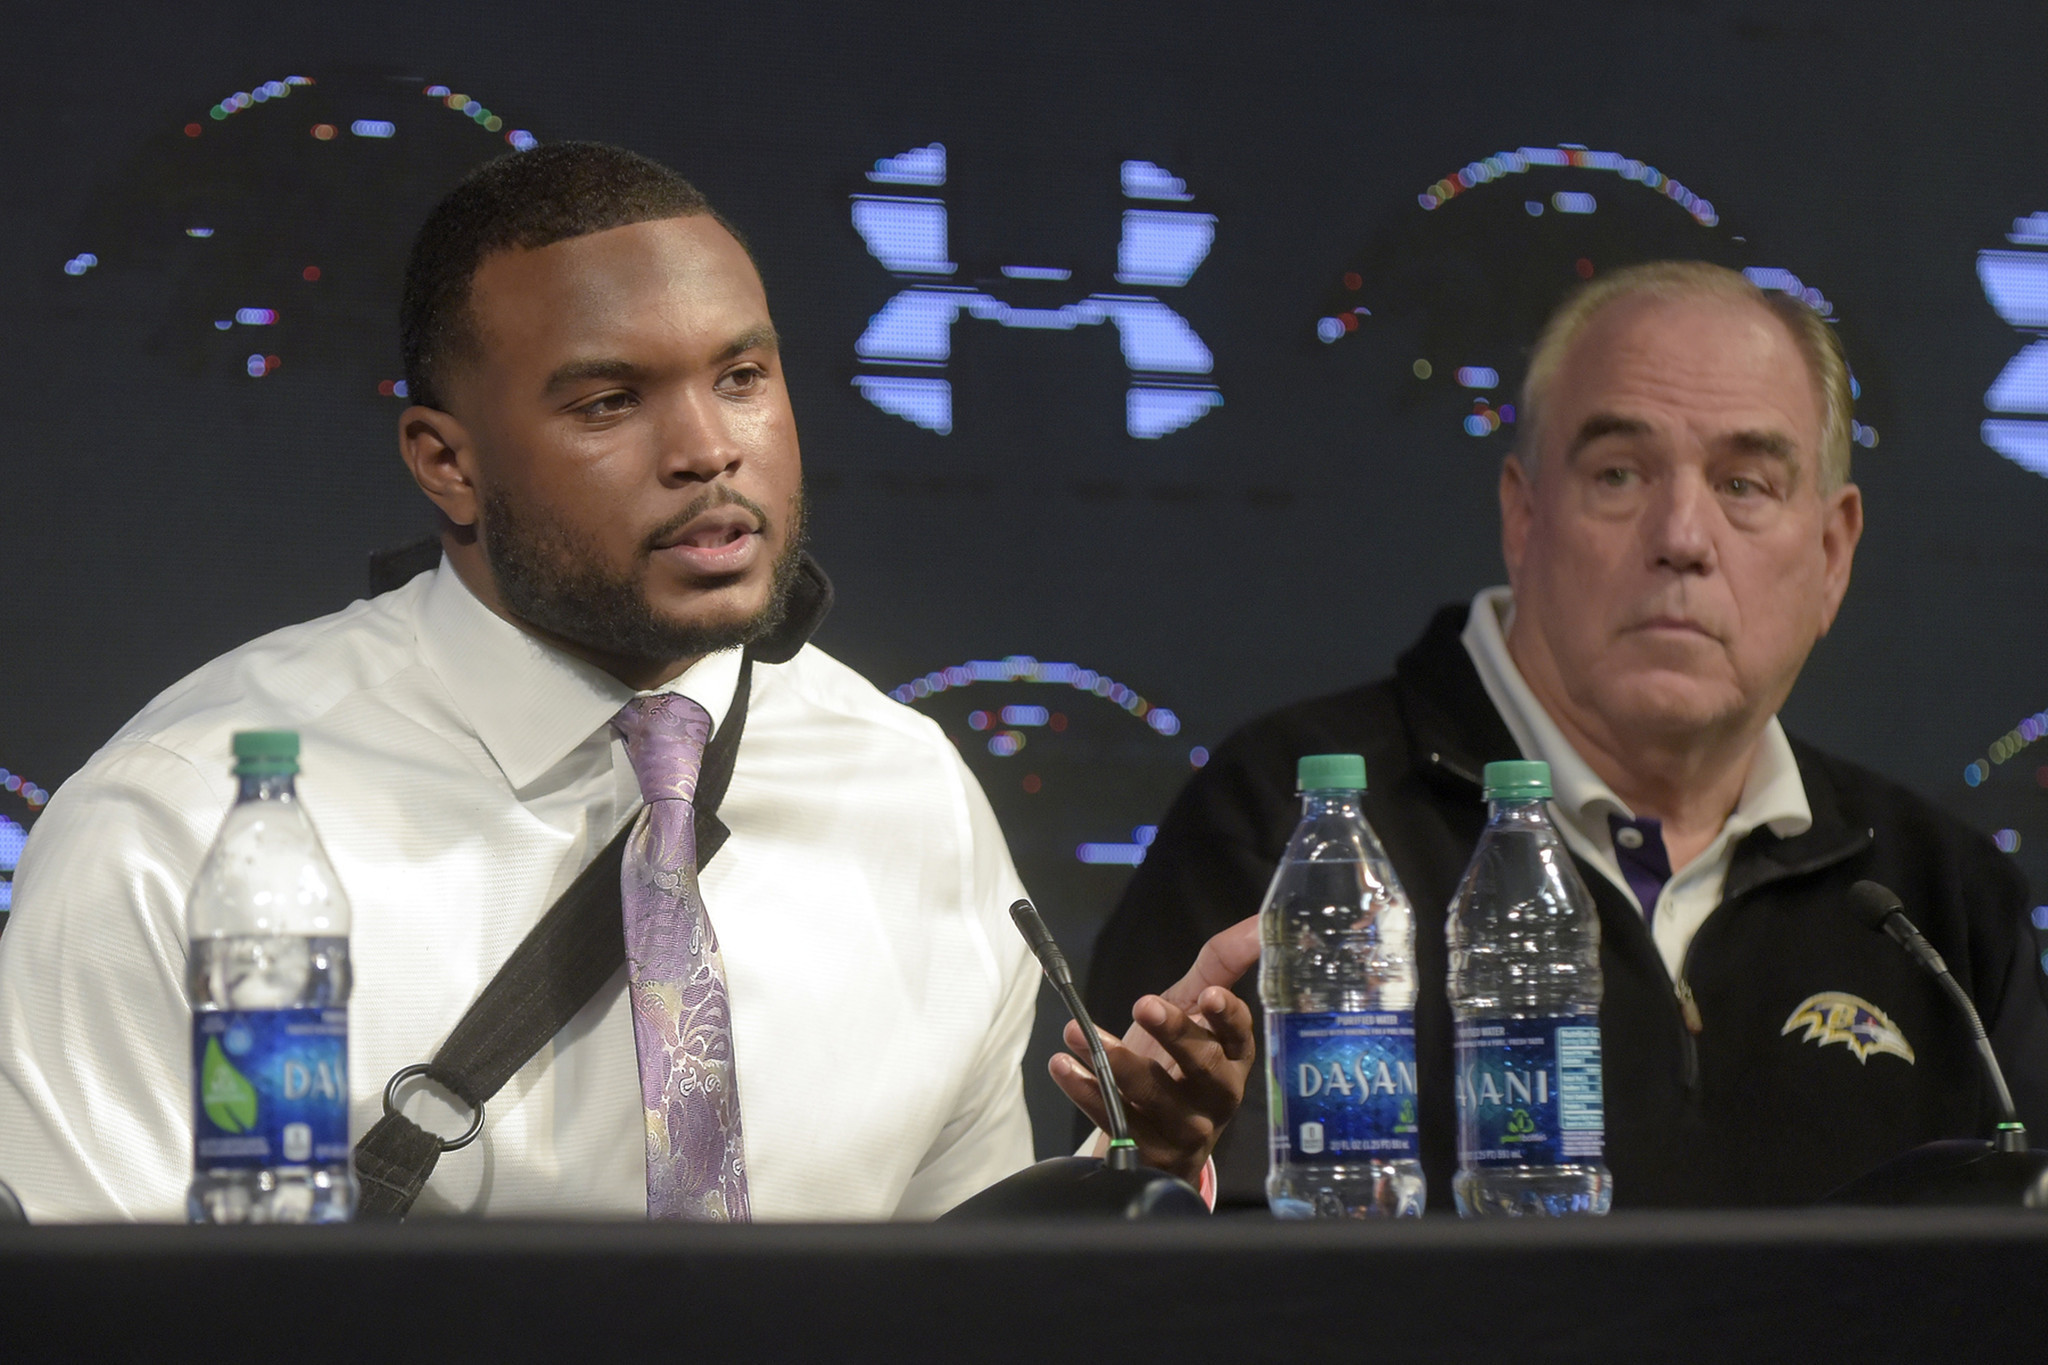 Zach orr retires due to congenital neckspine condition nfl com - Orr S Retirement Is A Bittersweet Ending For A Fine Young Player And A Big Blow To The Ravens Baltimore Sun